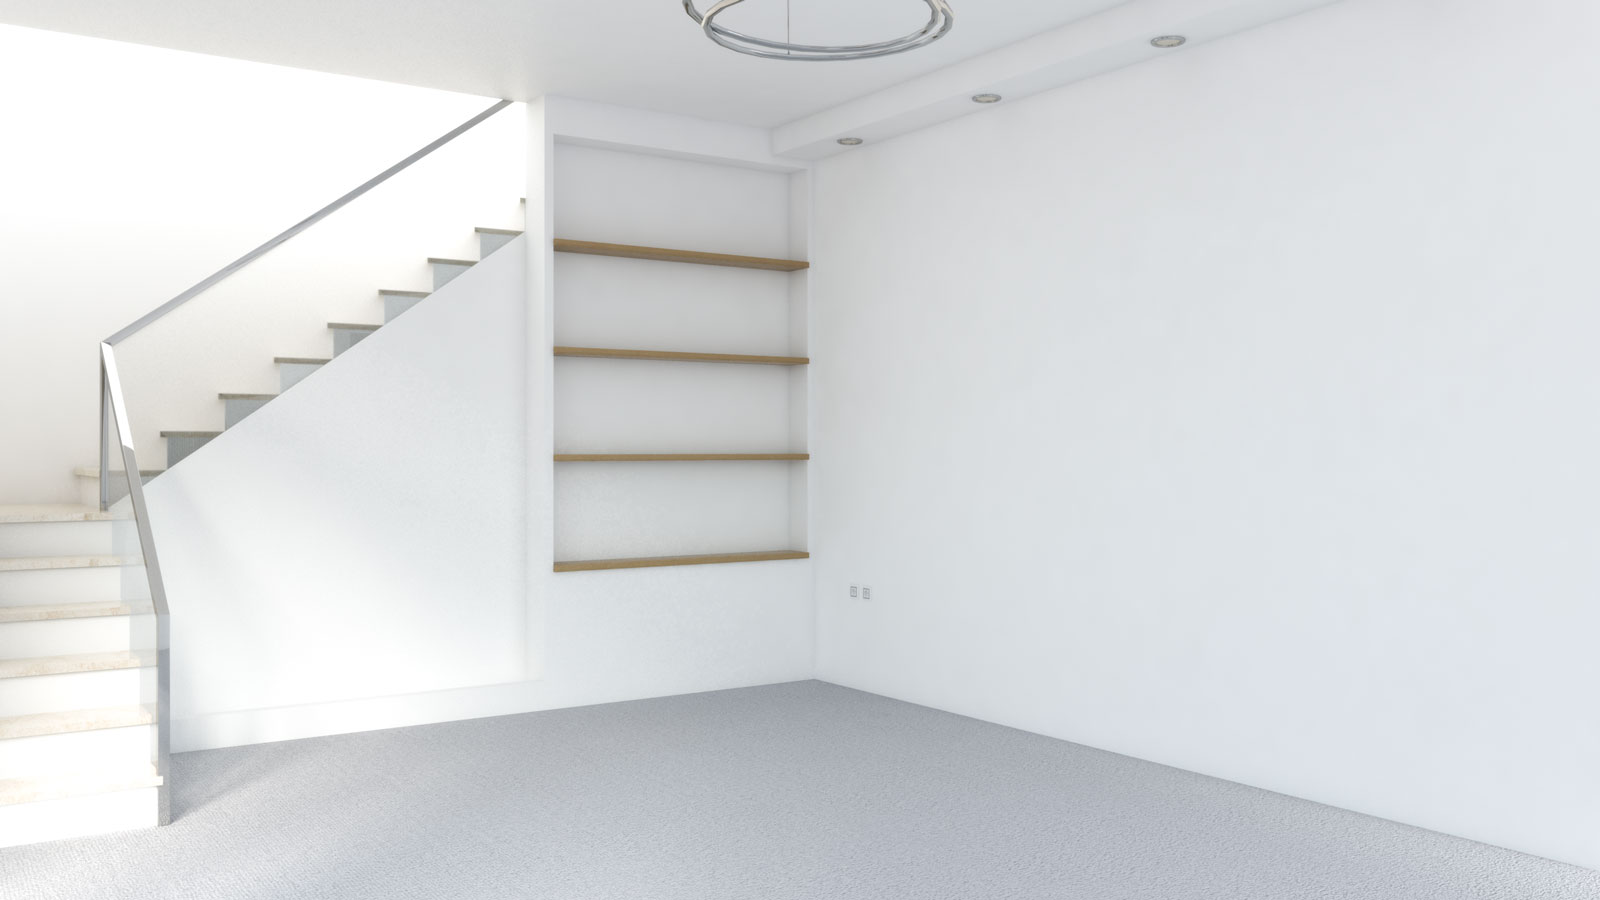 Light gray carpet with white walls